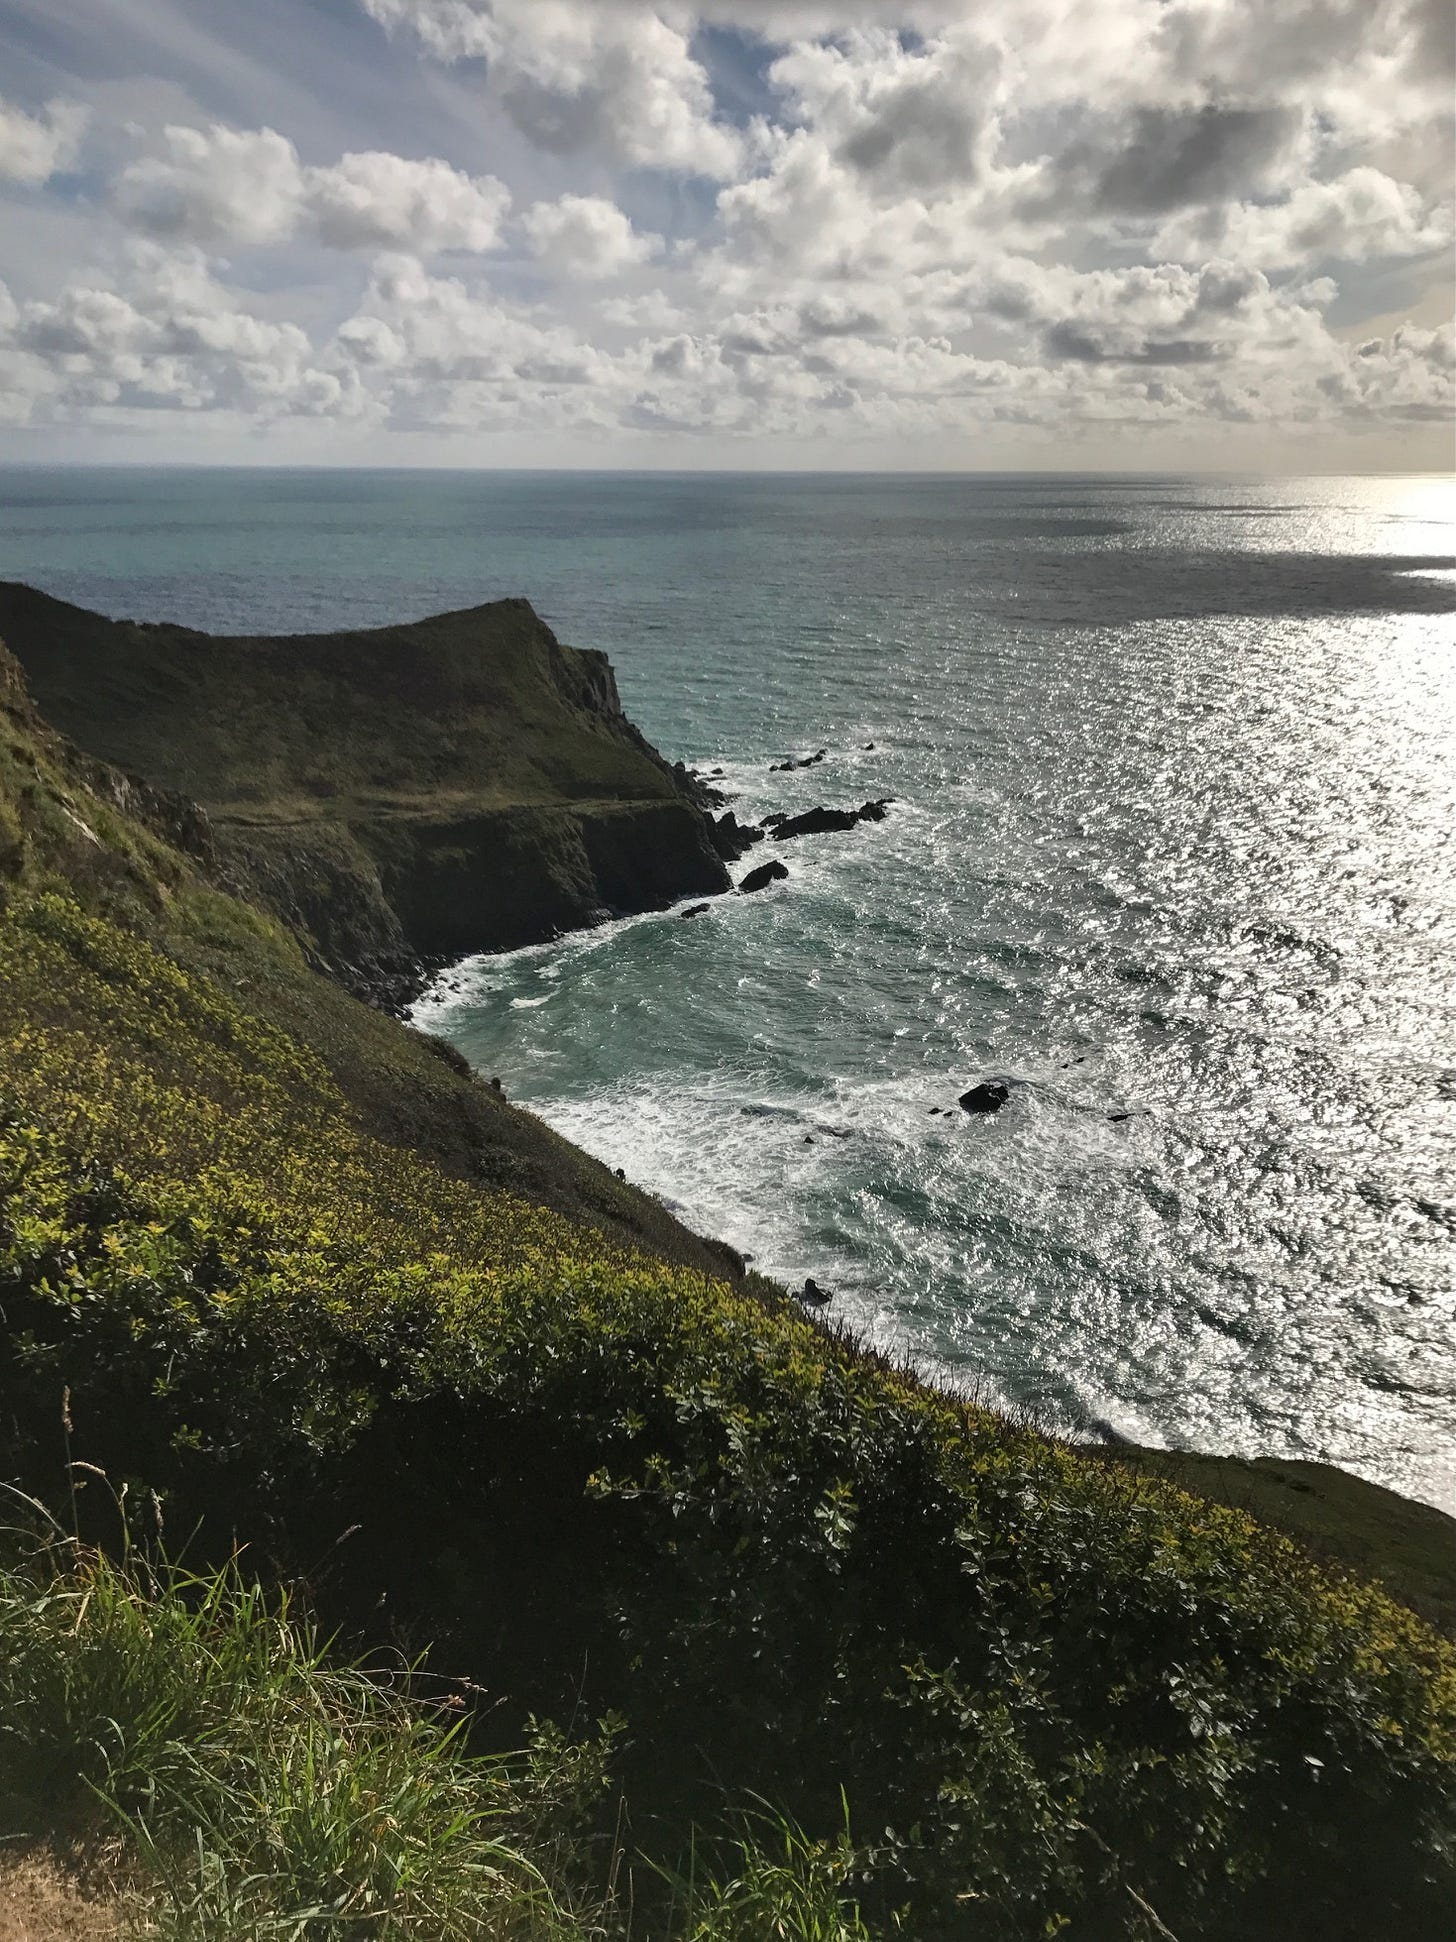 A view out to sea from a rugged headland - it's a sunny February day, and the sea is sparkling and blue.